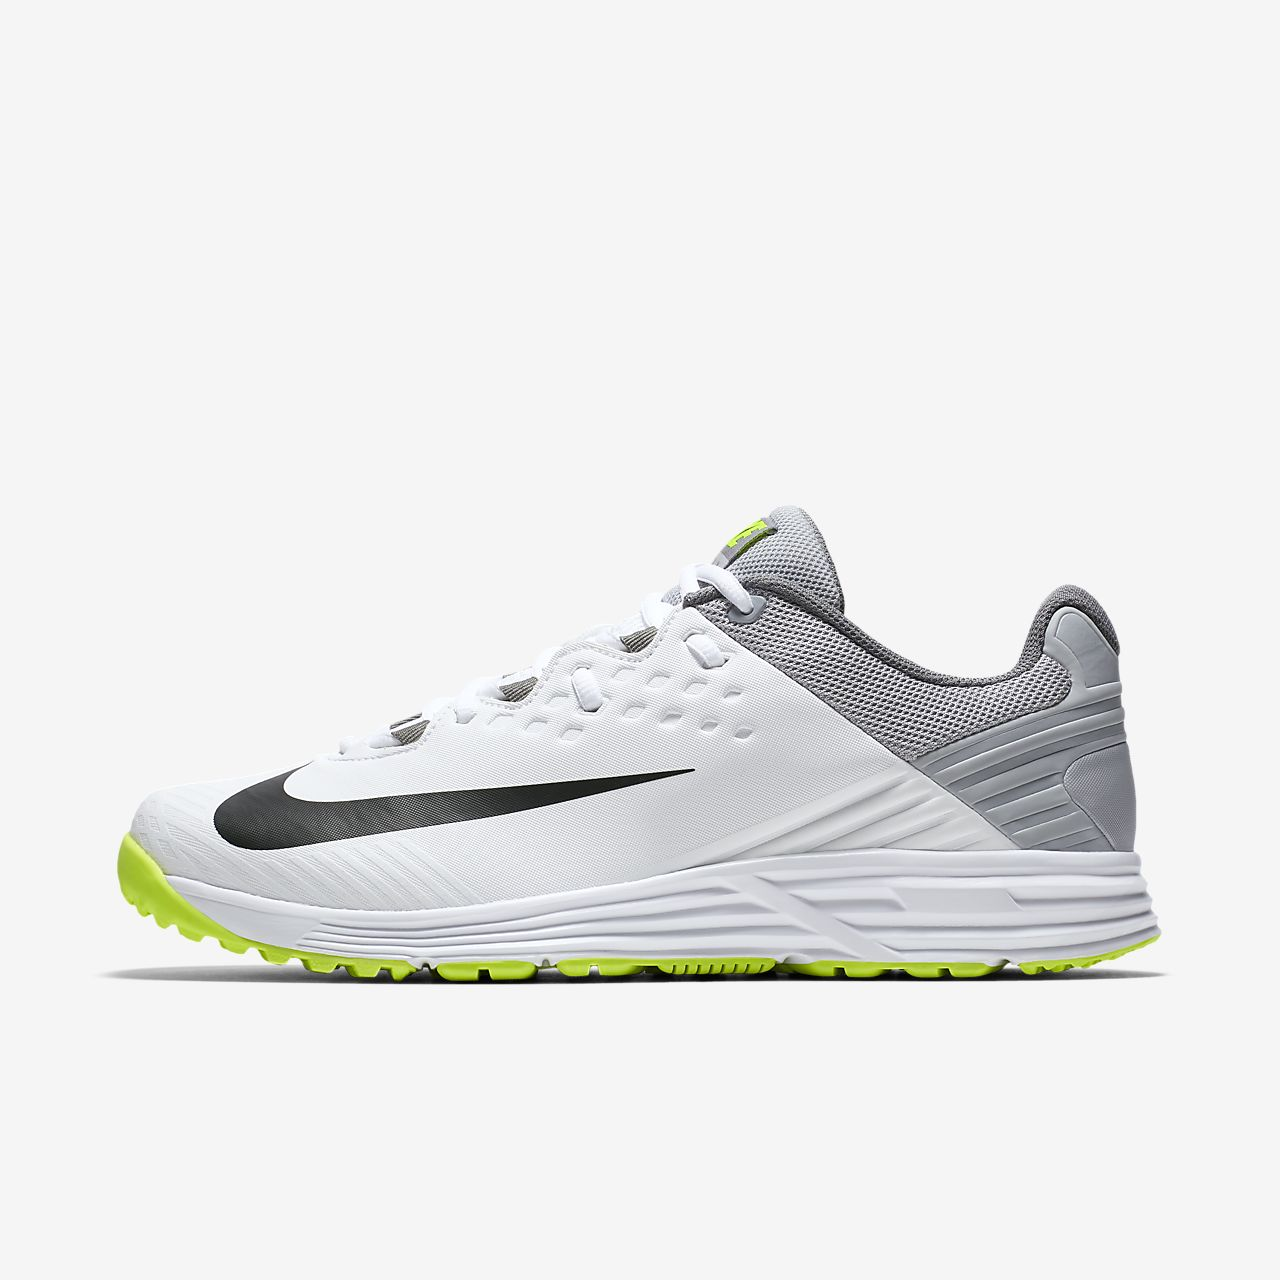 hot sale online 8c1f6 2a1dc ... Nike Potential 3 Unisex Cricket Shoe